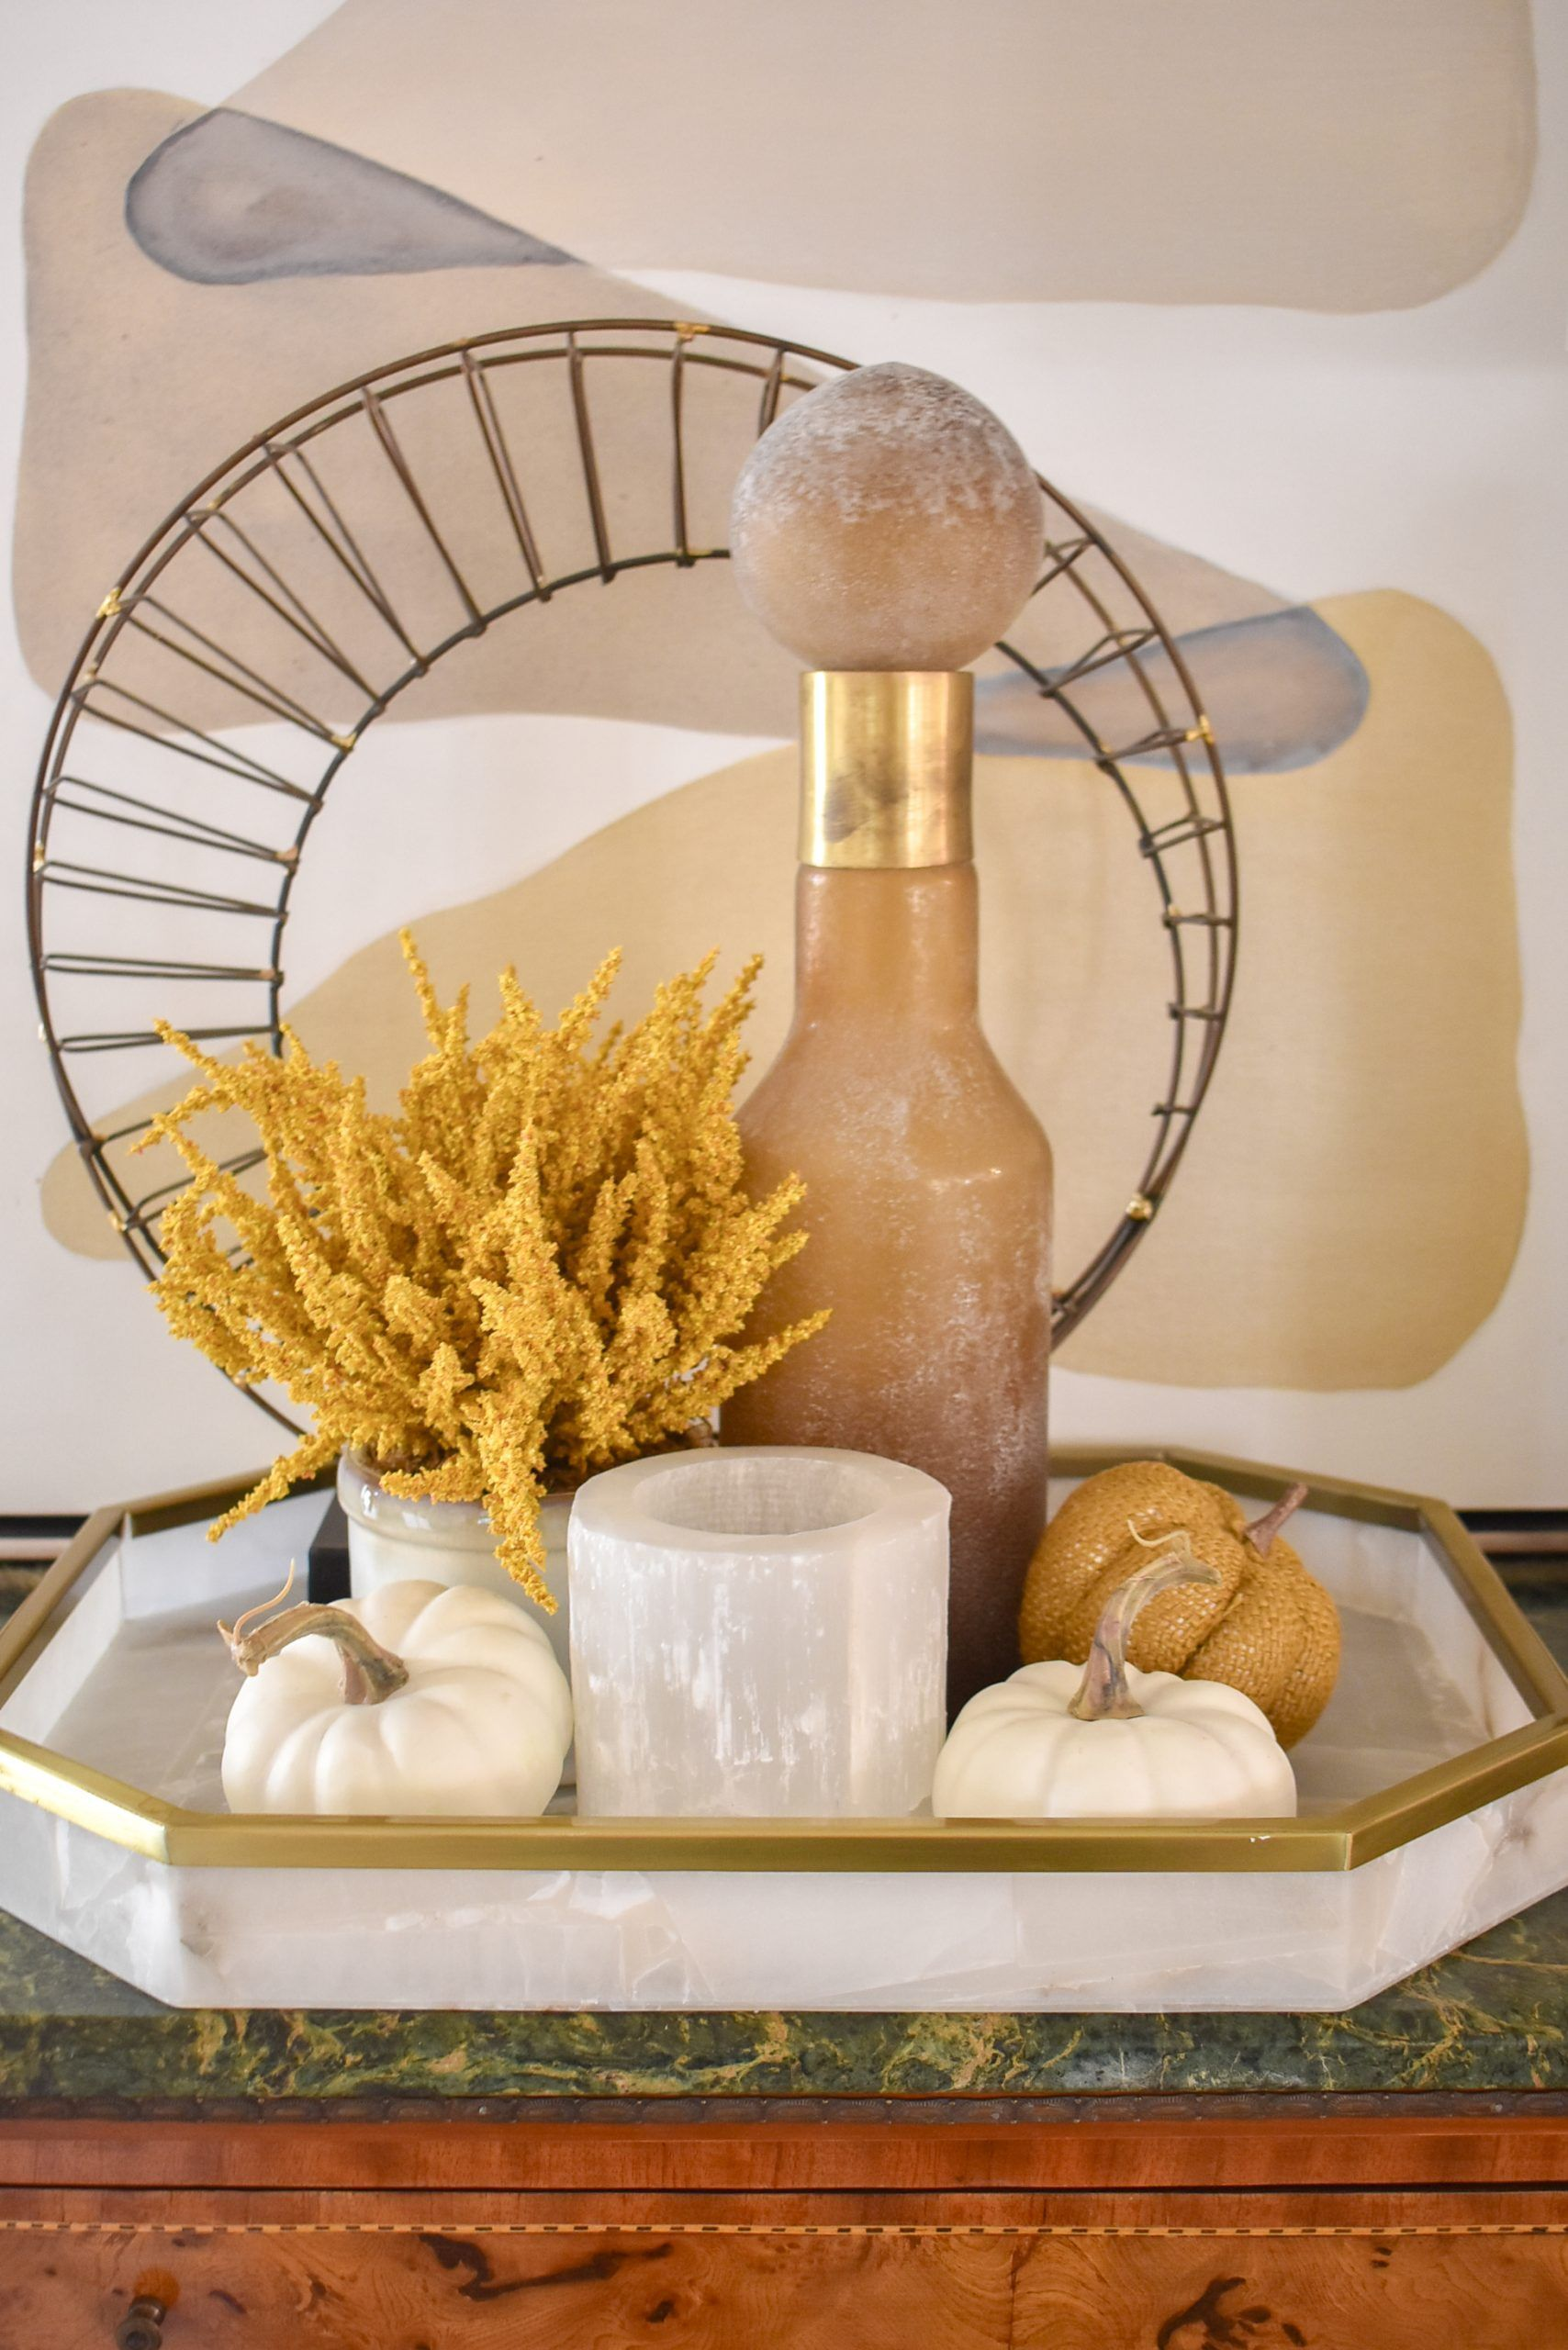 When Is The White House Decorated For The 2020 Thanksgiving-Christmas Holidays? Simple Harvest Gold and White Fall Decor   Home with Holliday in